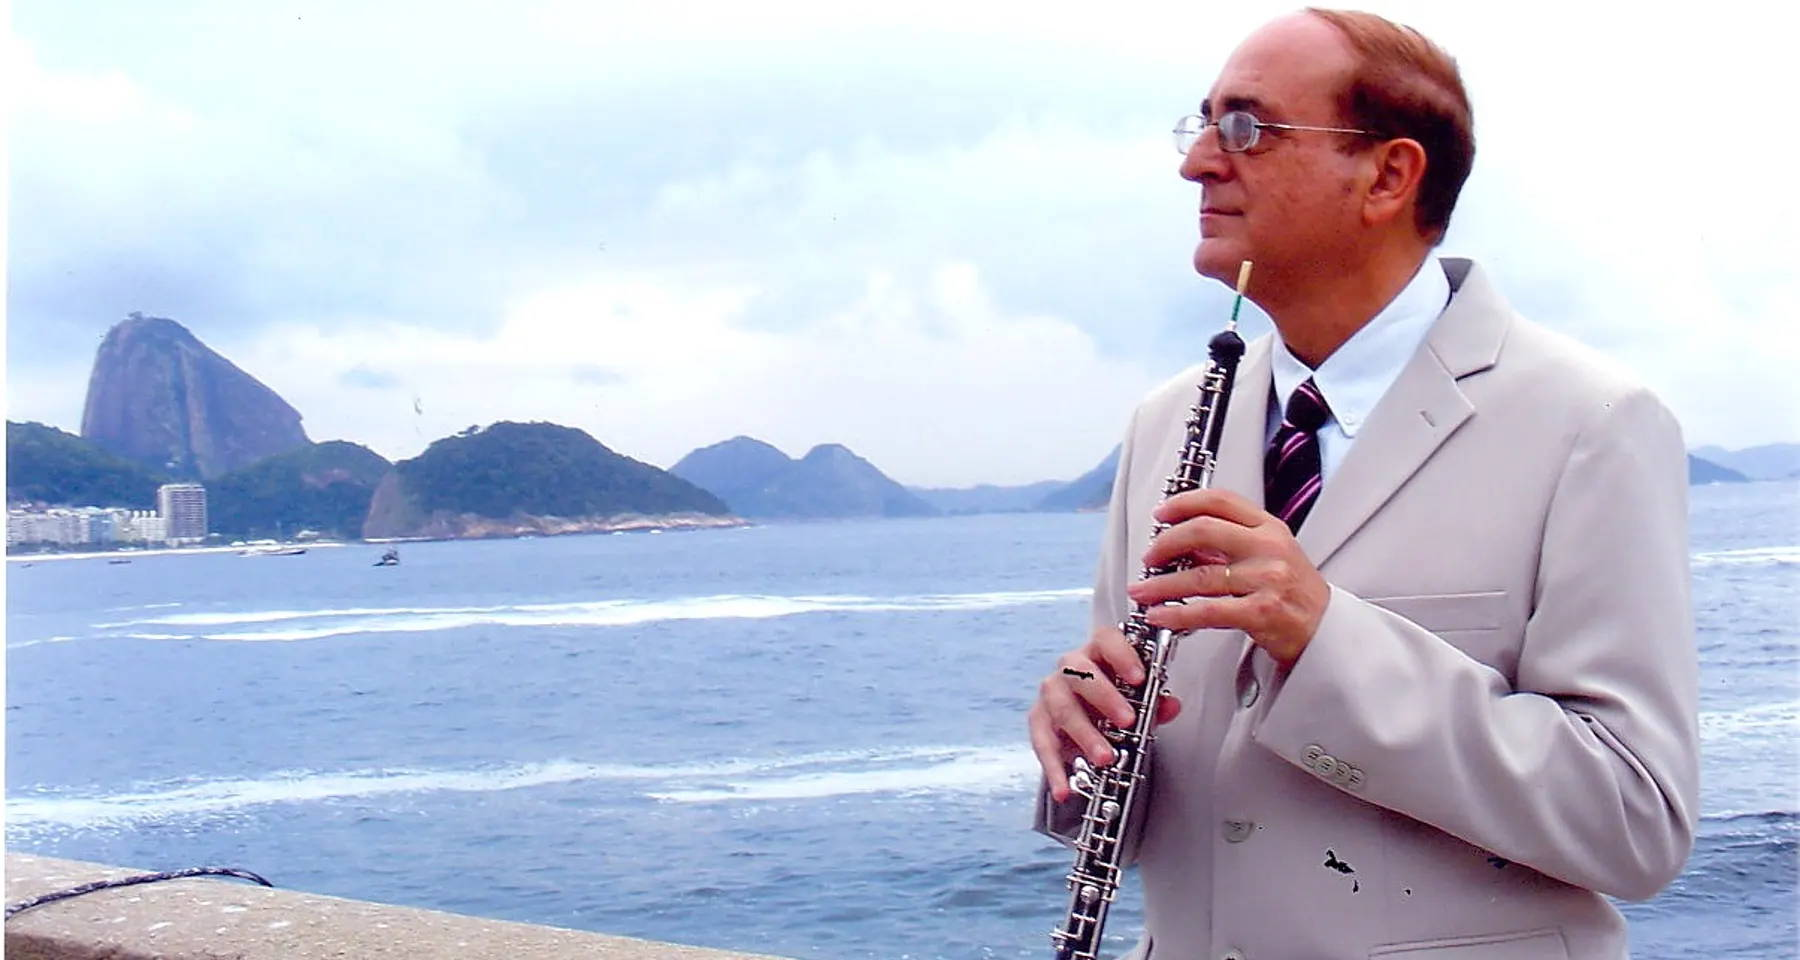 A recital of oboe and guitar music from Brazil